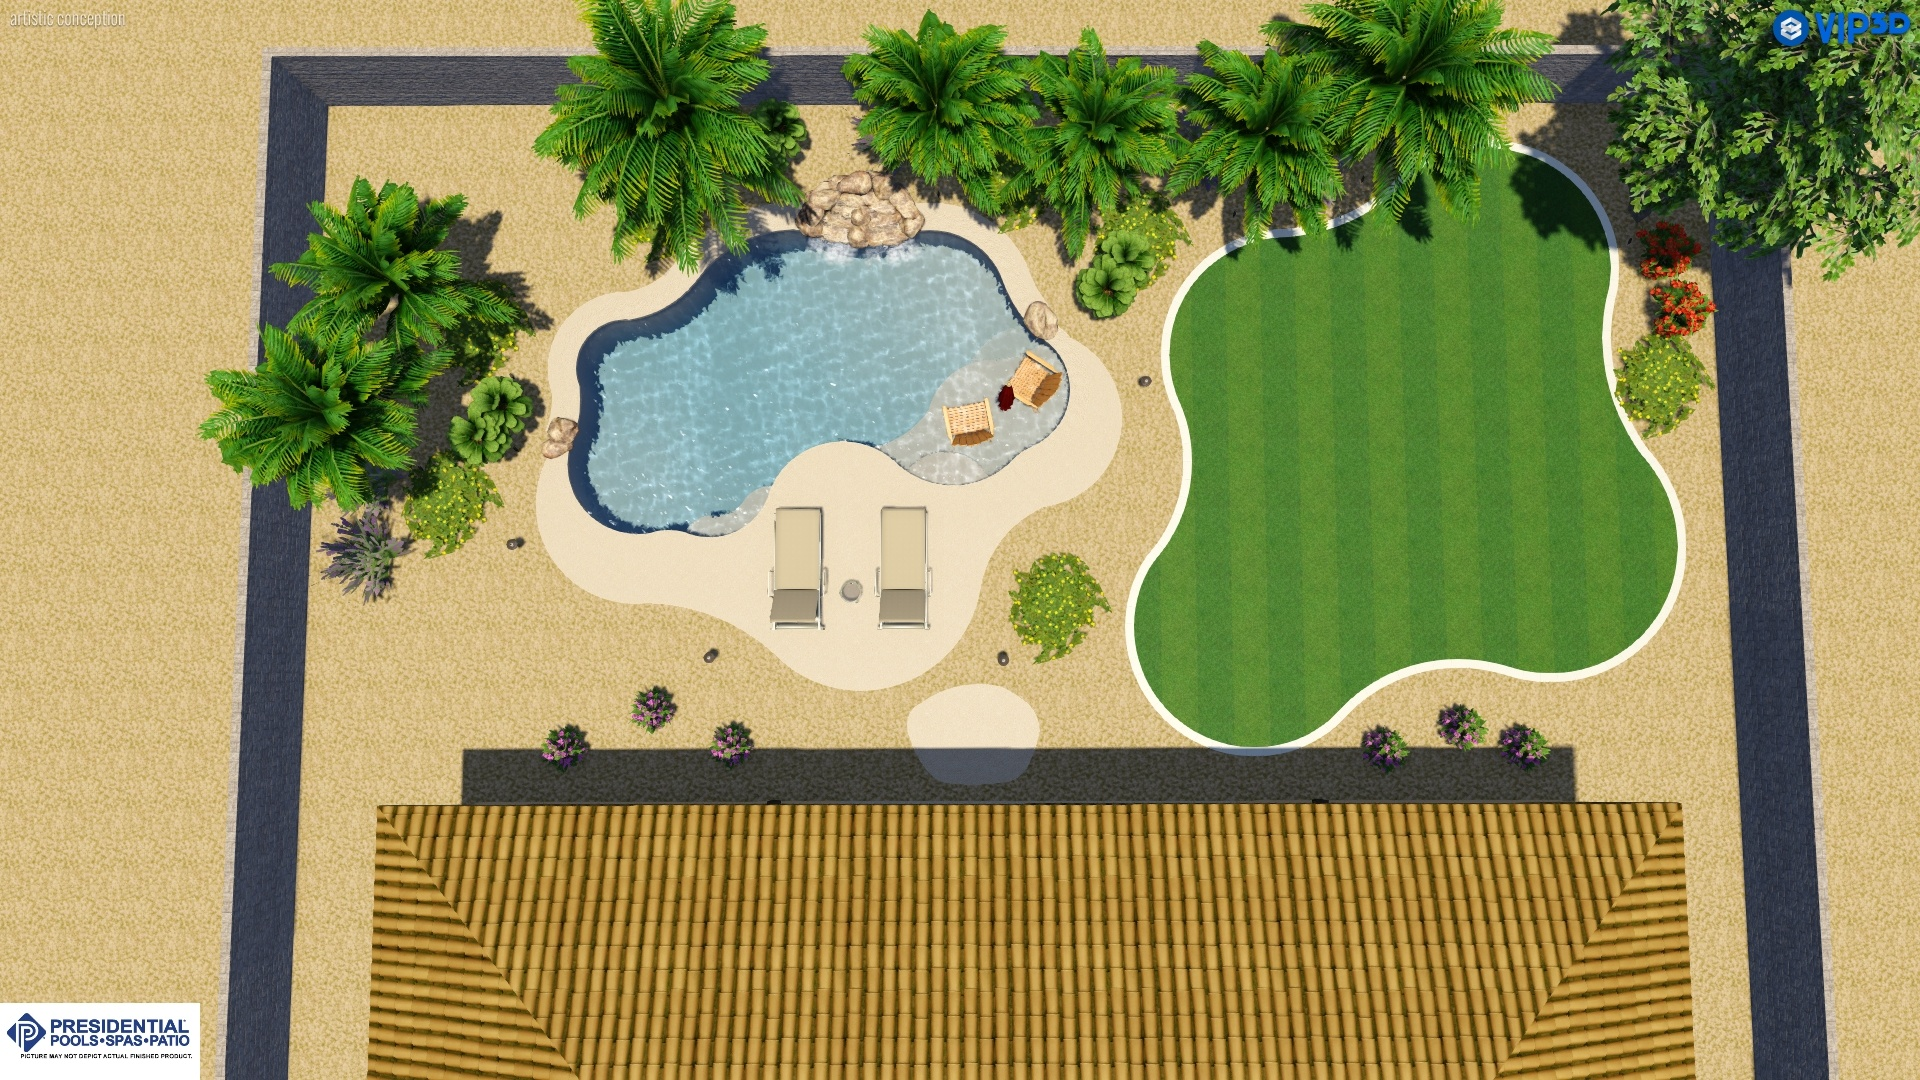 How Big Should You Build Your Pool?